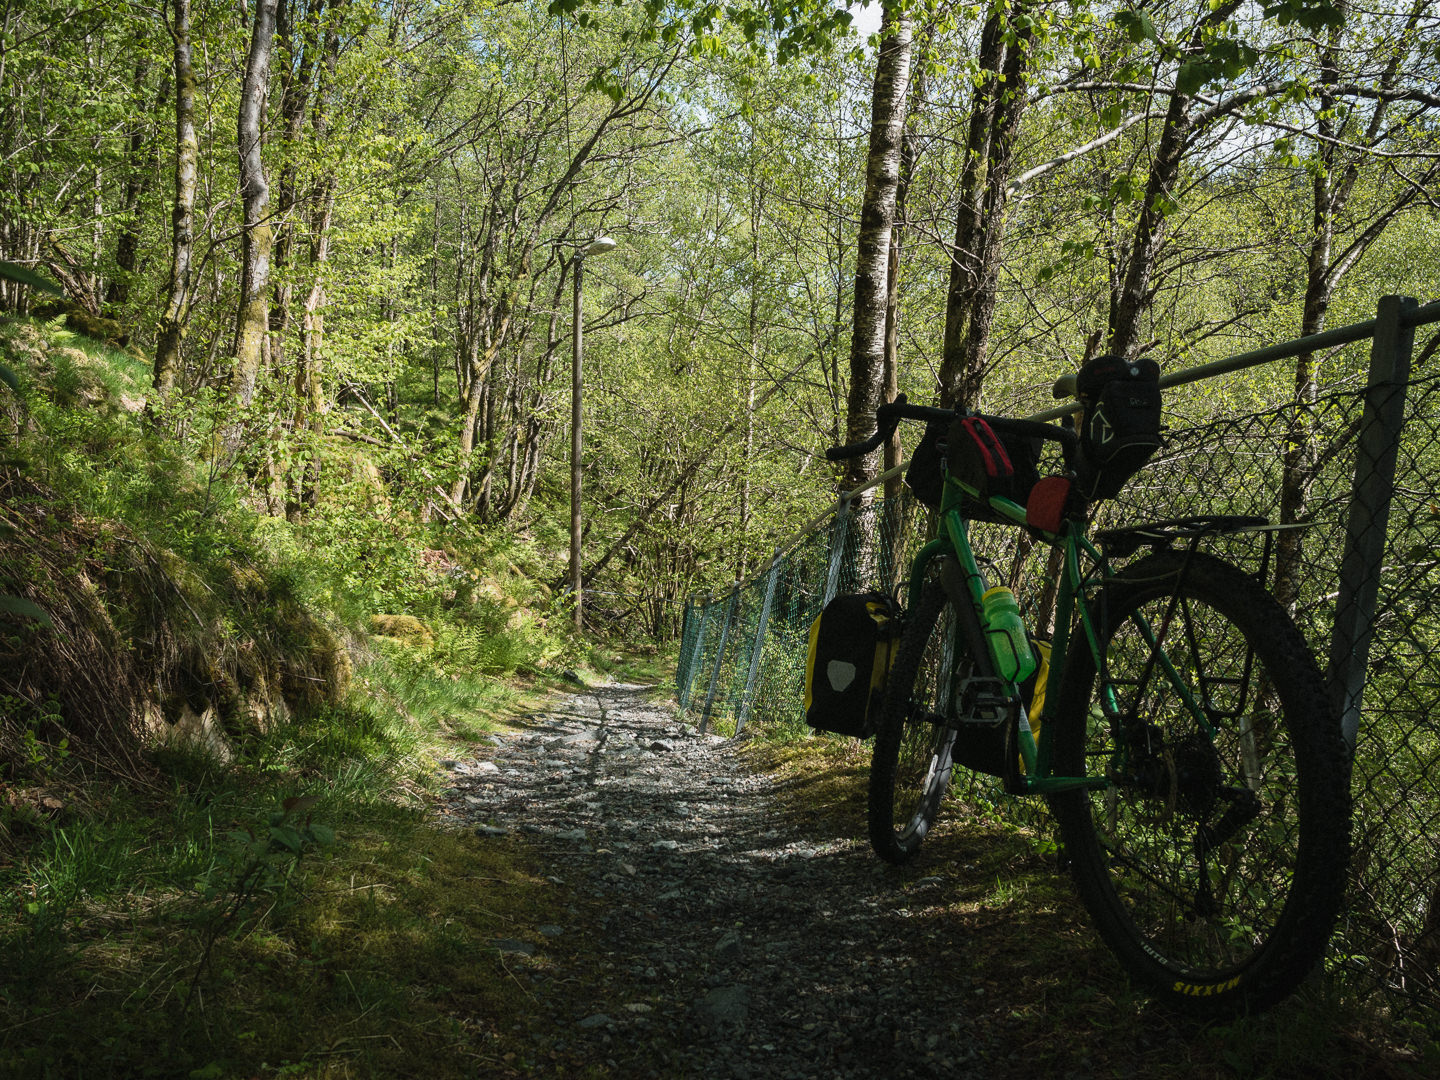 touring bicycle on a gravel singletrack